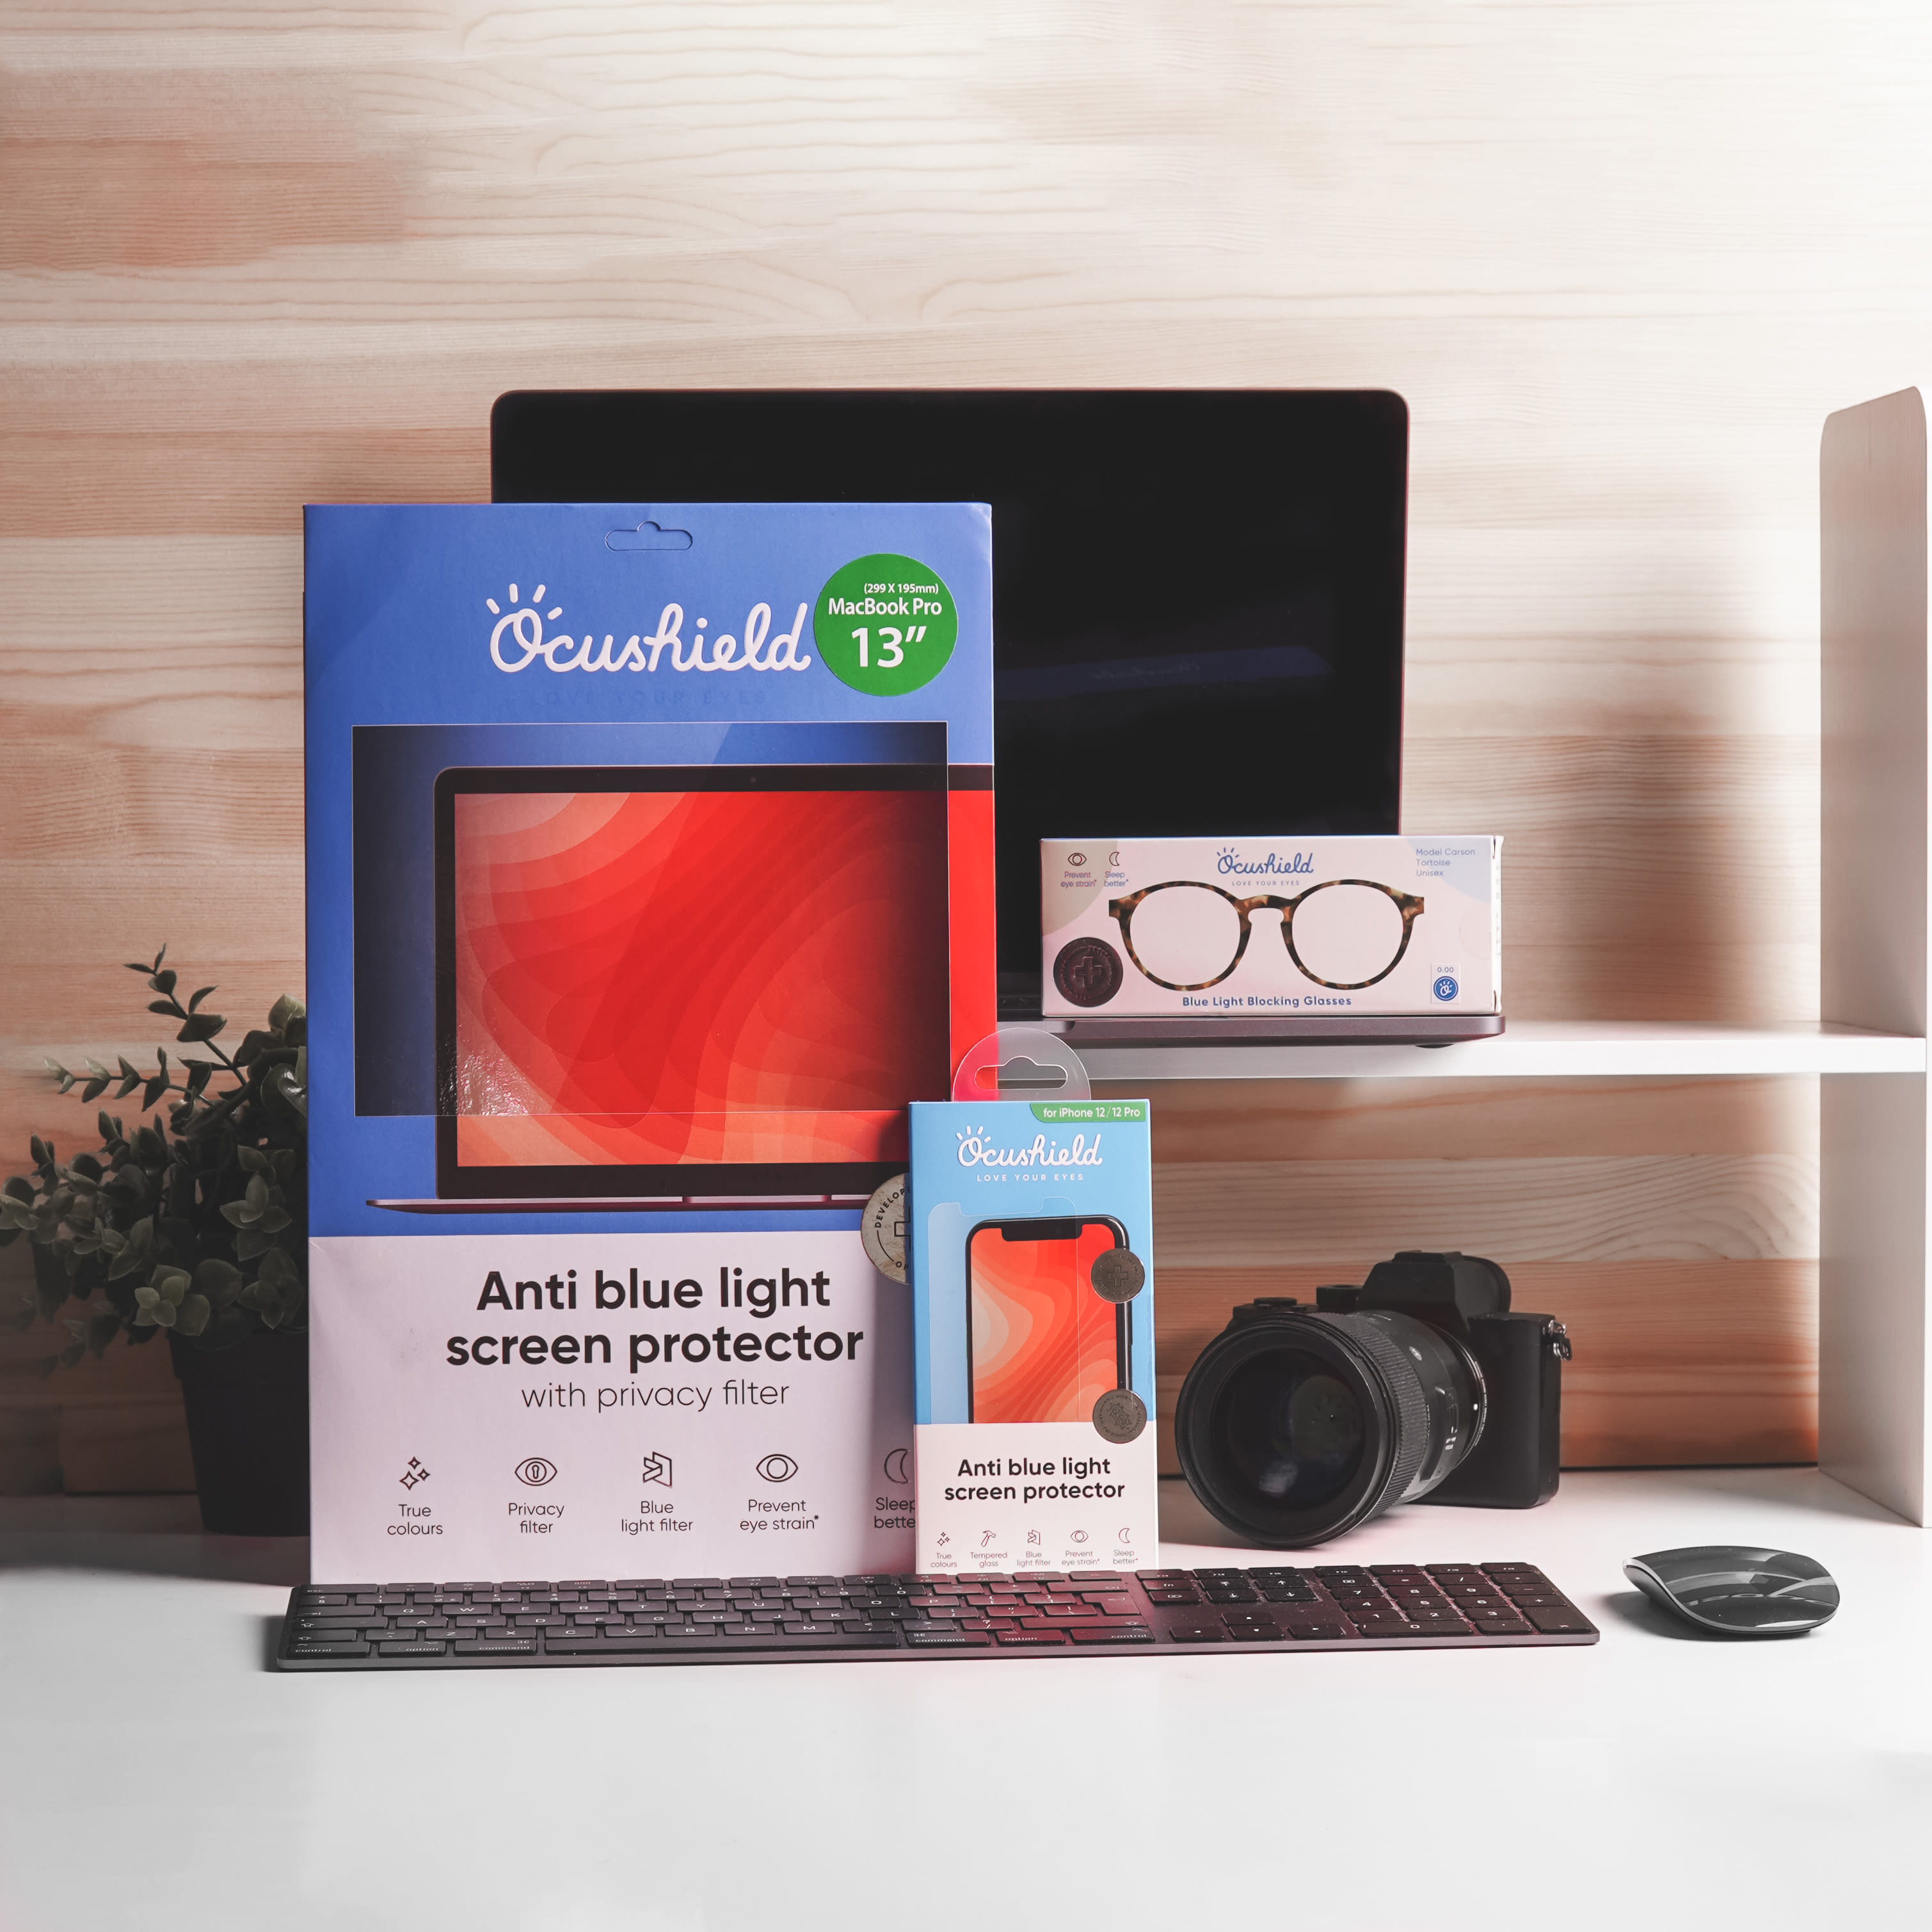 Displaying Ocushield products